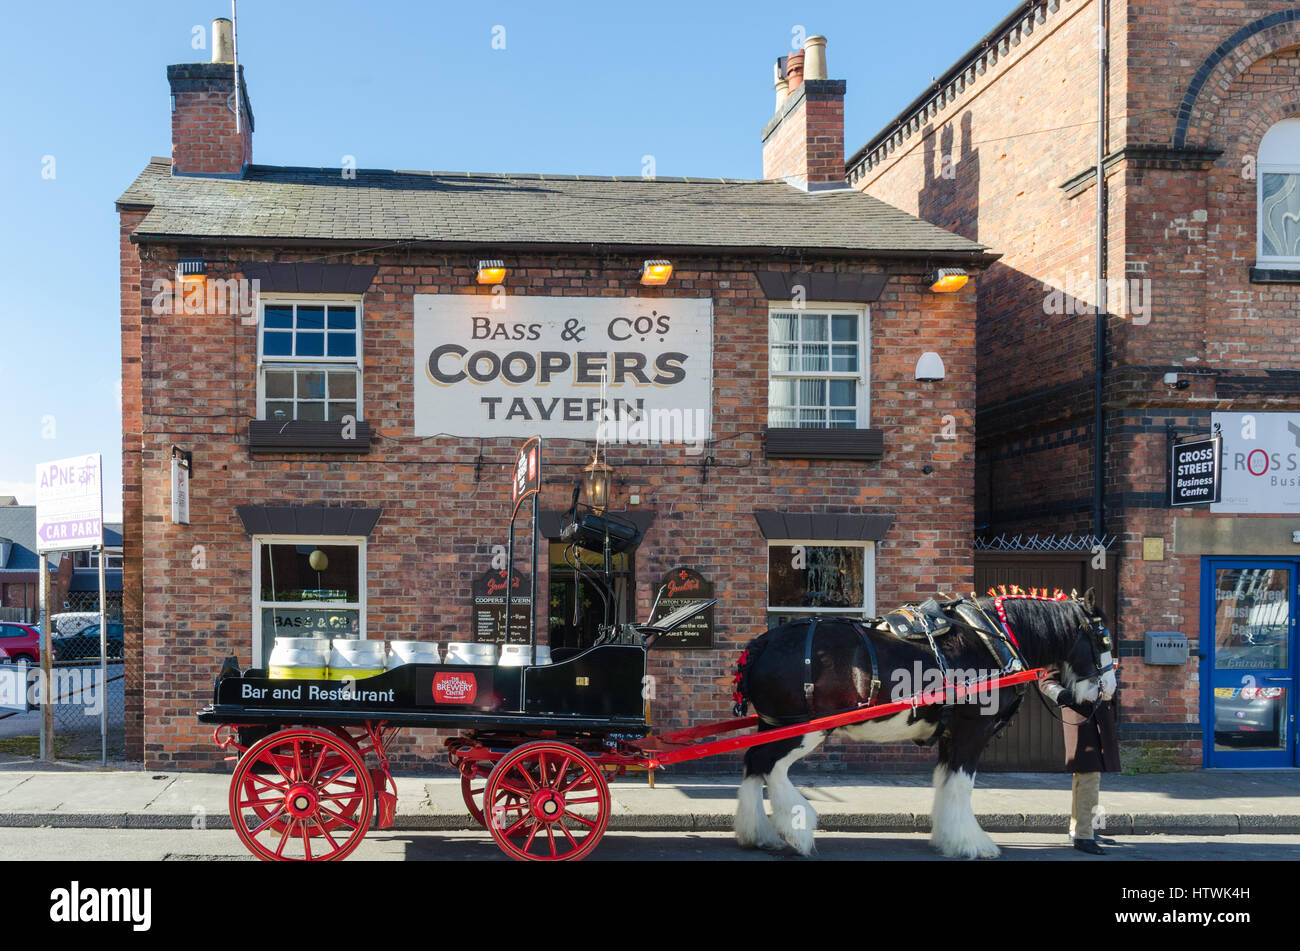 The Coopers Tavern in Burton-upon-Trent which has just been refurbished by Joules Brewery - Stock Image